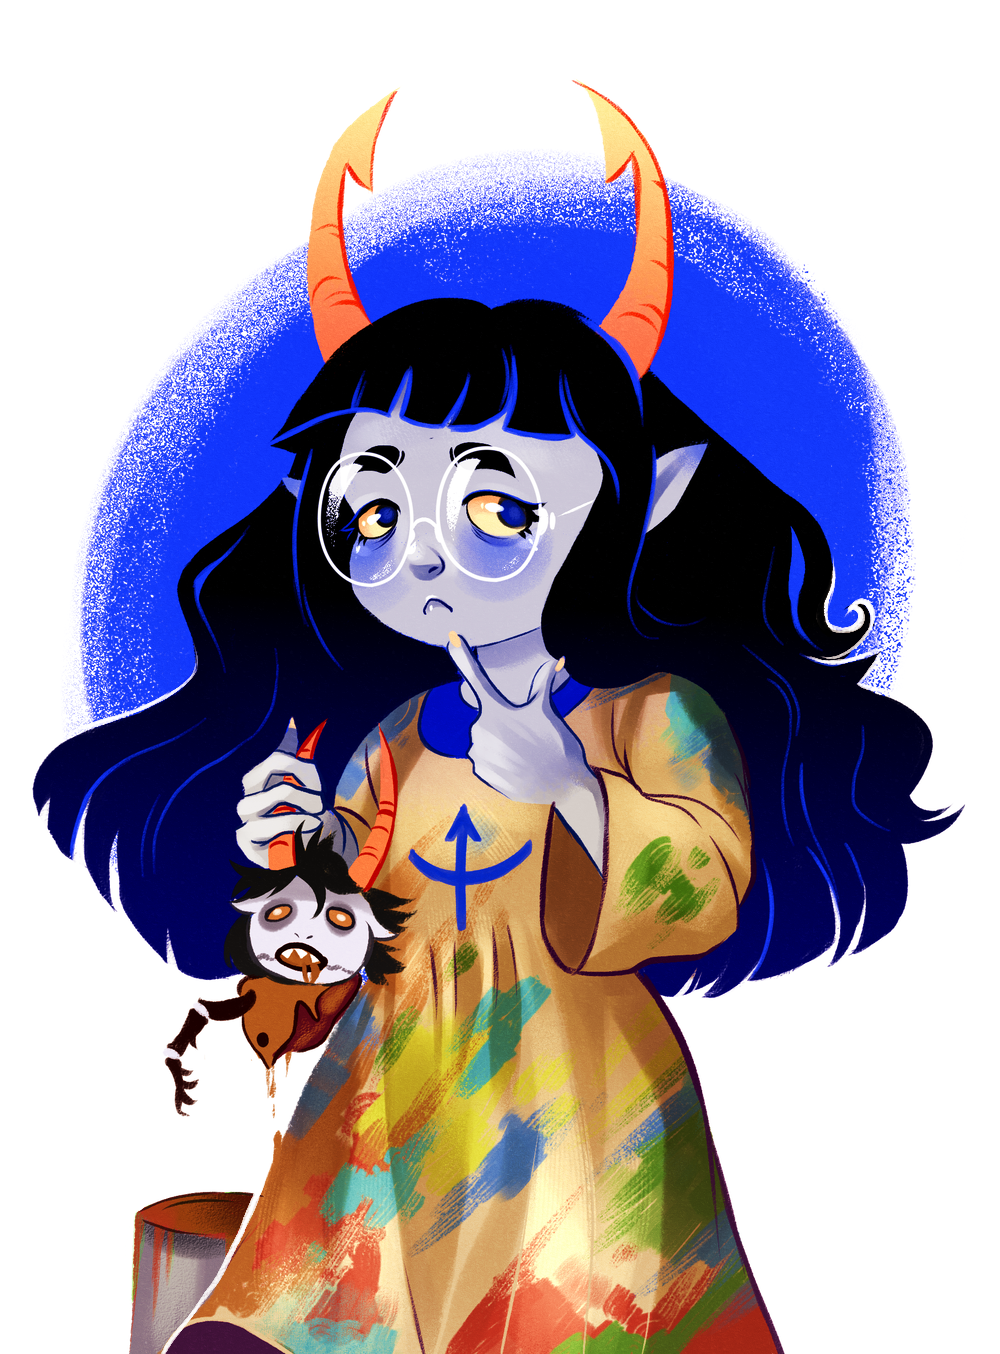 amisia_erdehn blood decapitation gore grubs hiveswap matrosharts